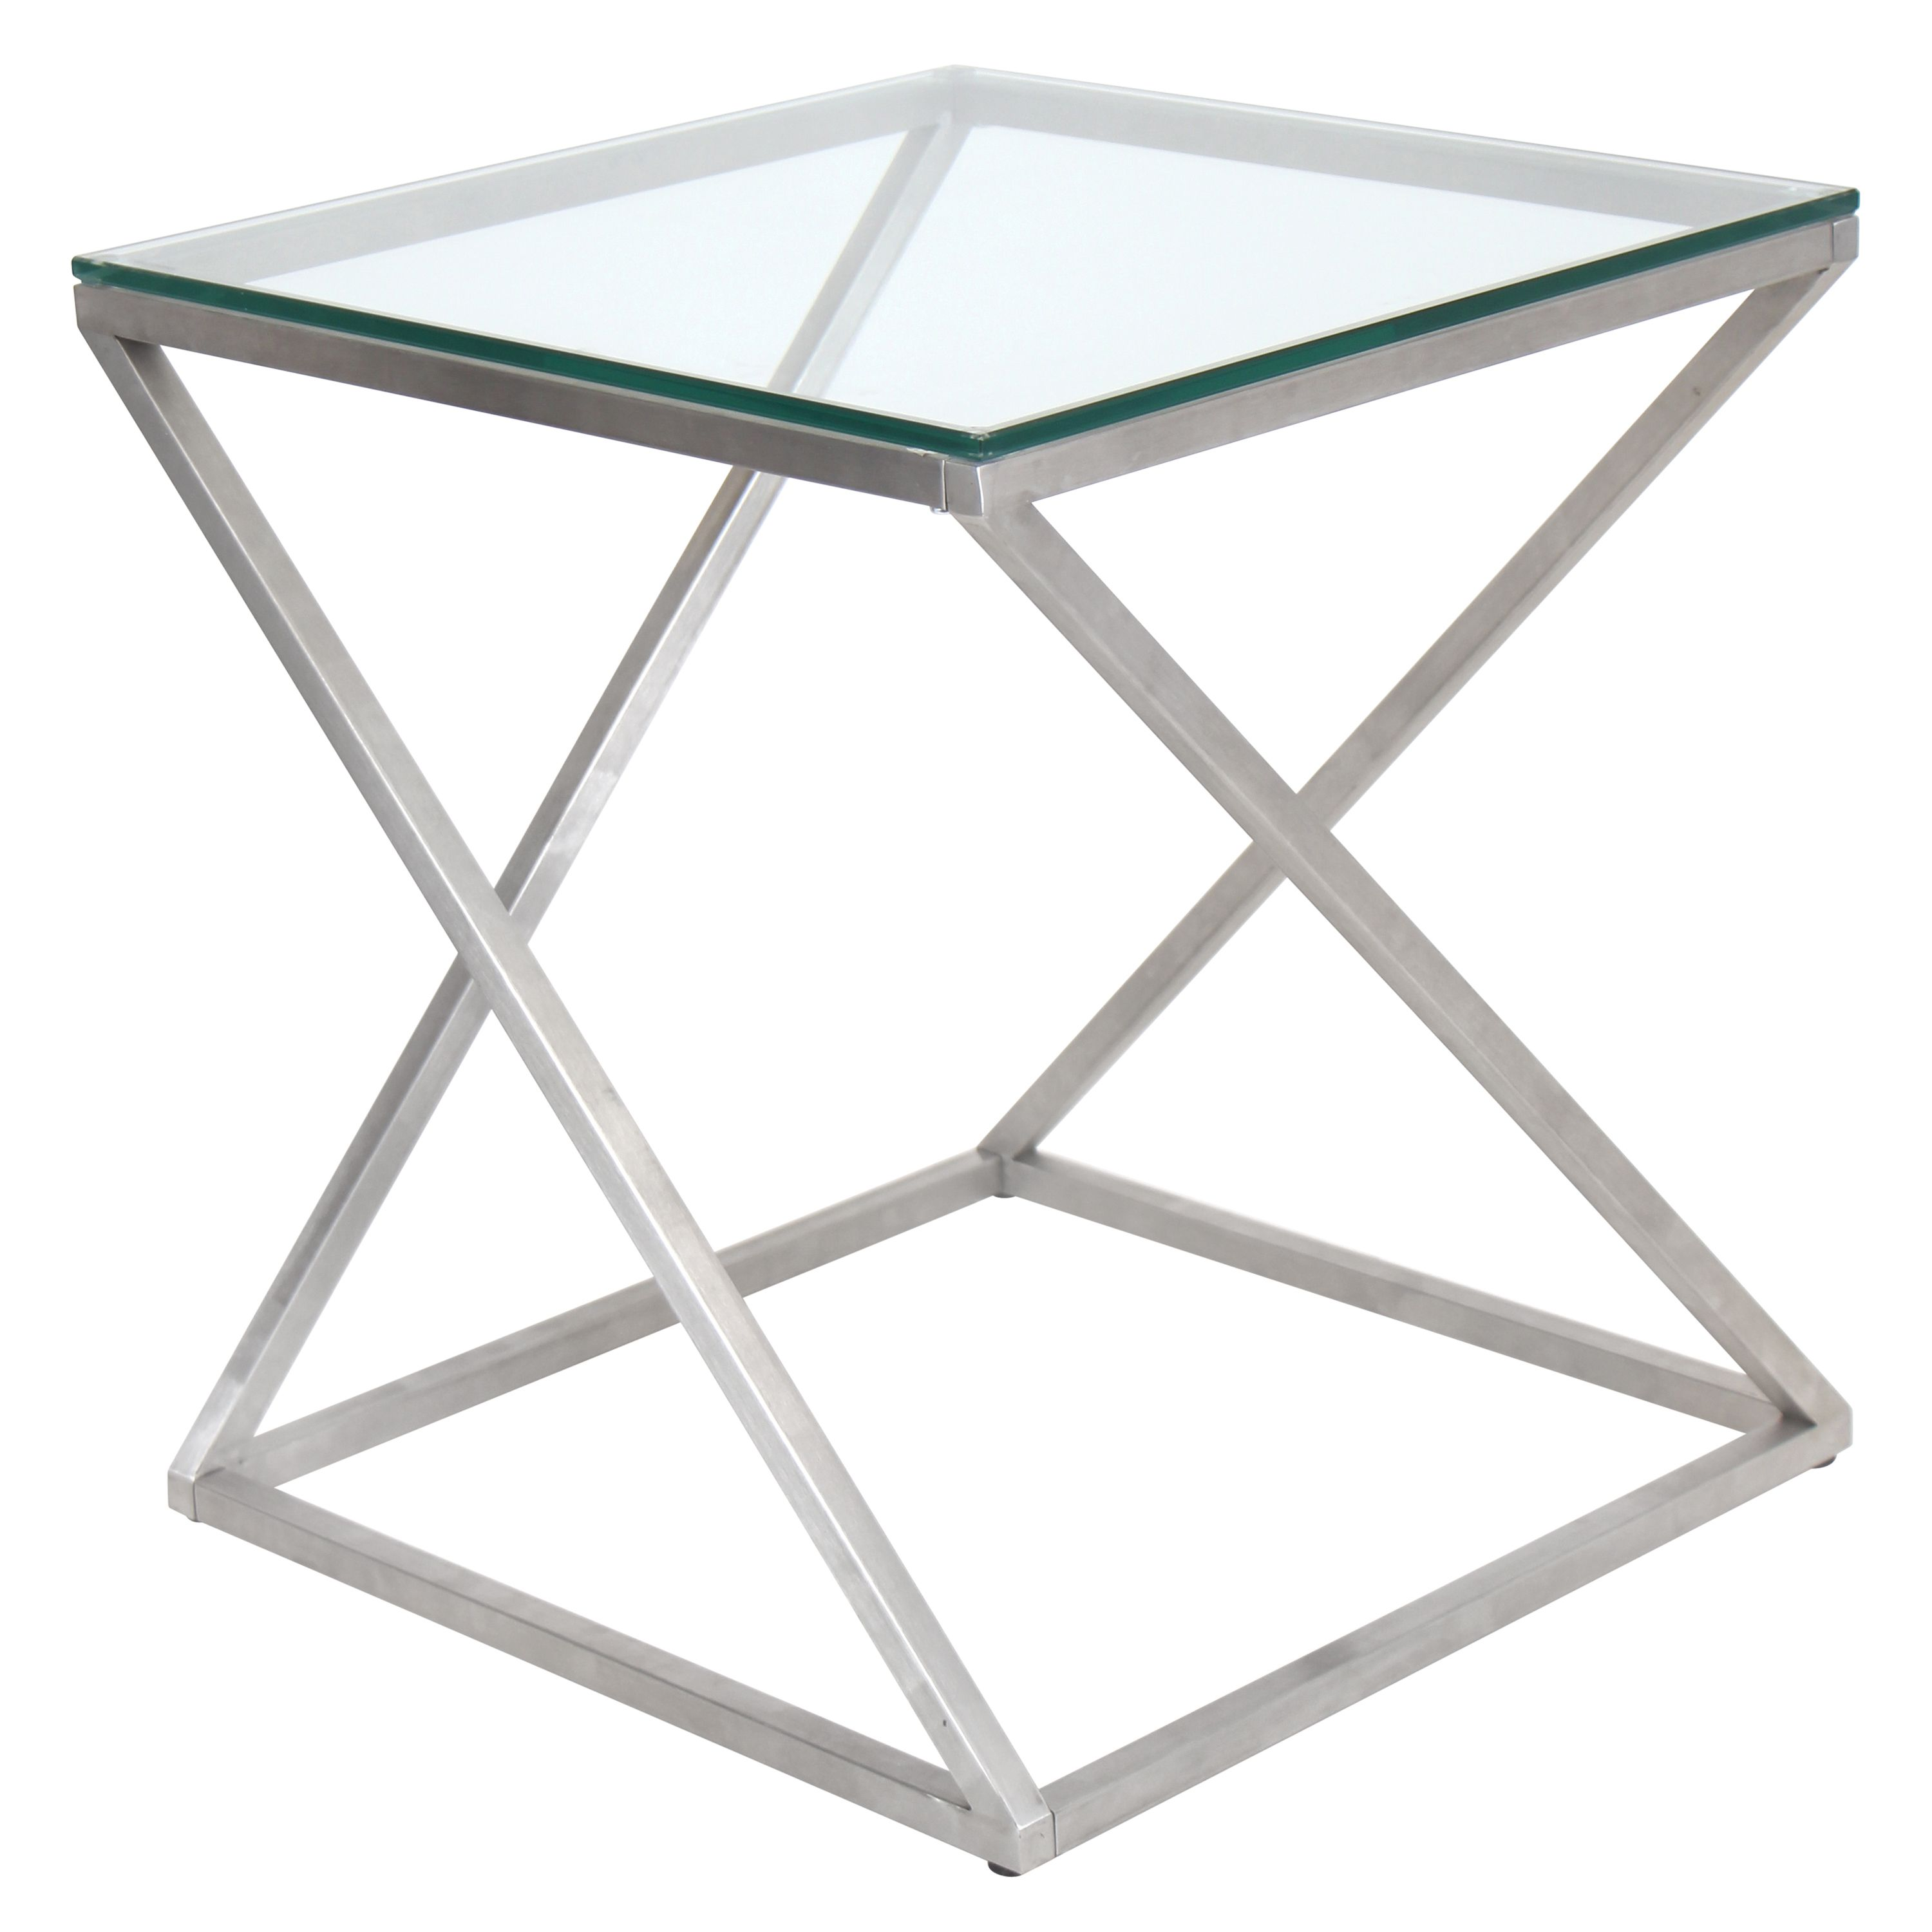 4Z Side Table An Intricately Twisted Chrome Base Supports An Elegant Glass  End Table.